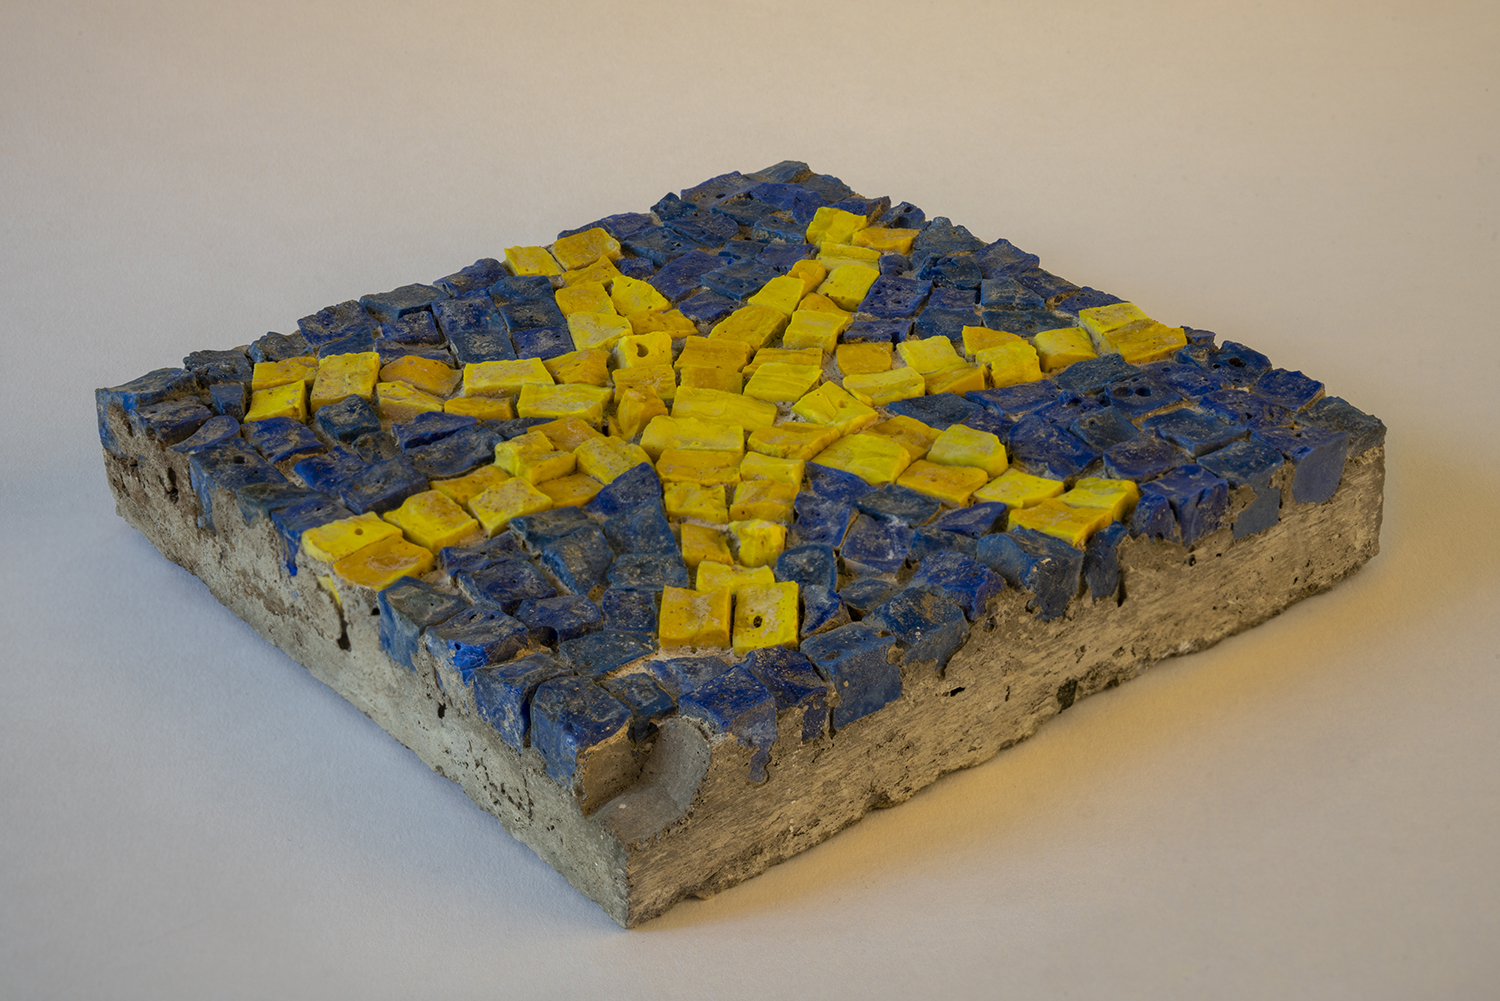 Figure 9: Glass tesserae were glued to a sheet of heavy paper, then then turned upside down and pressed into wet cement.